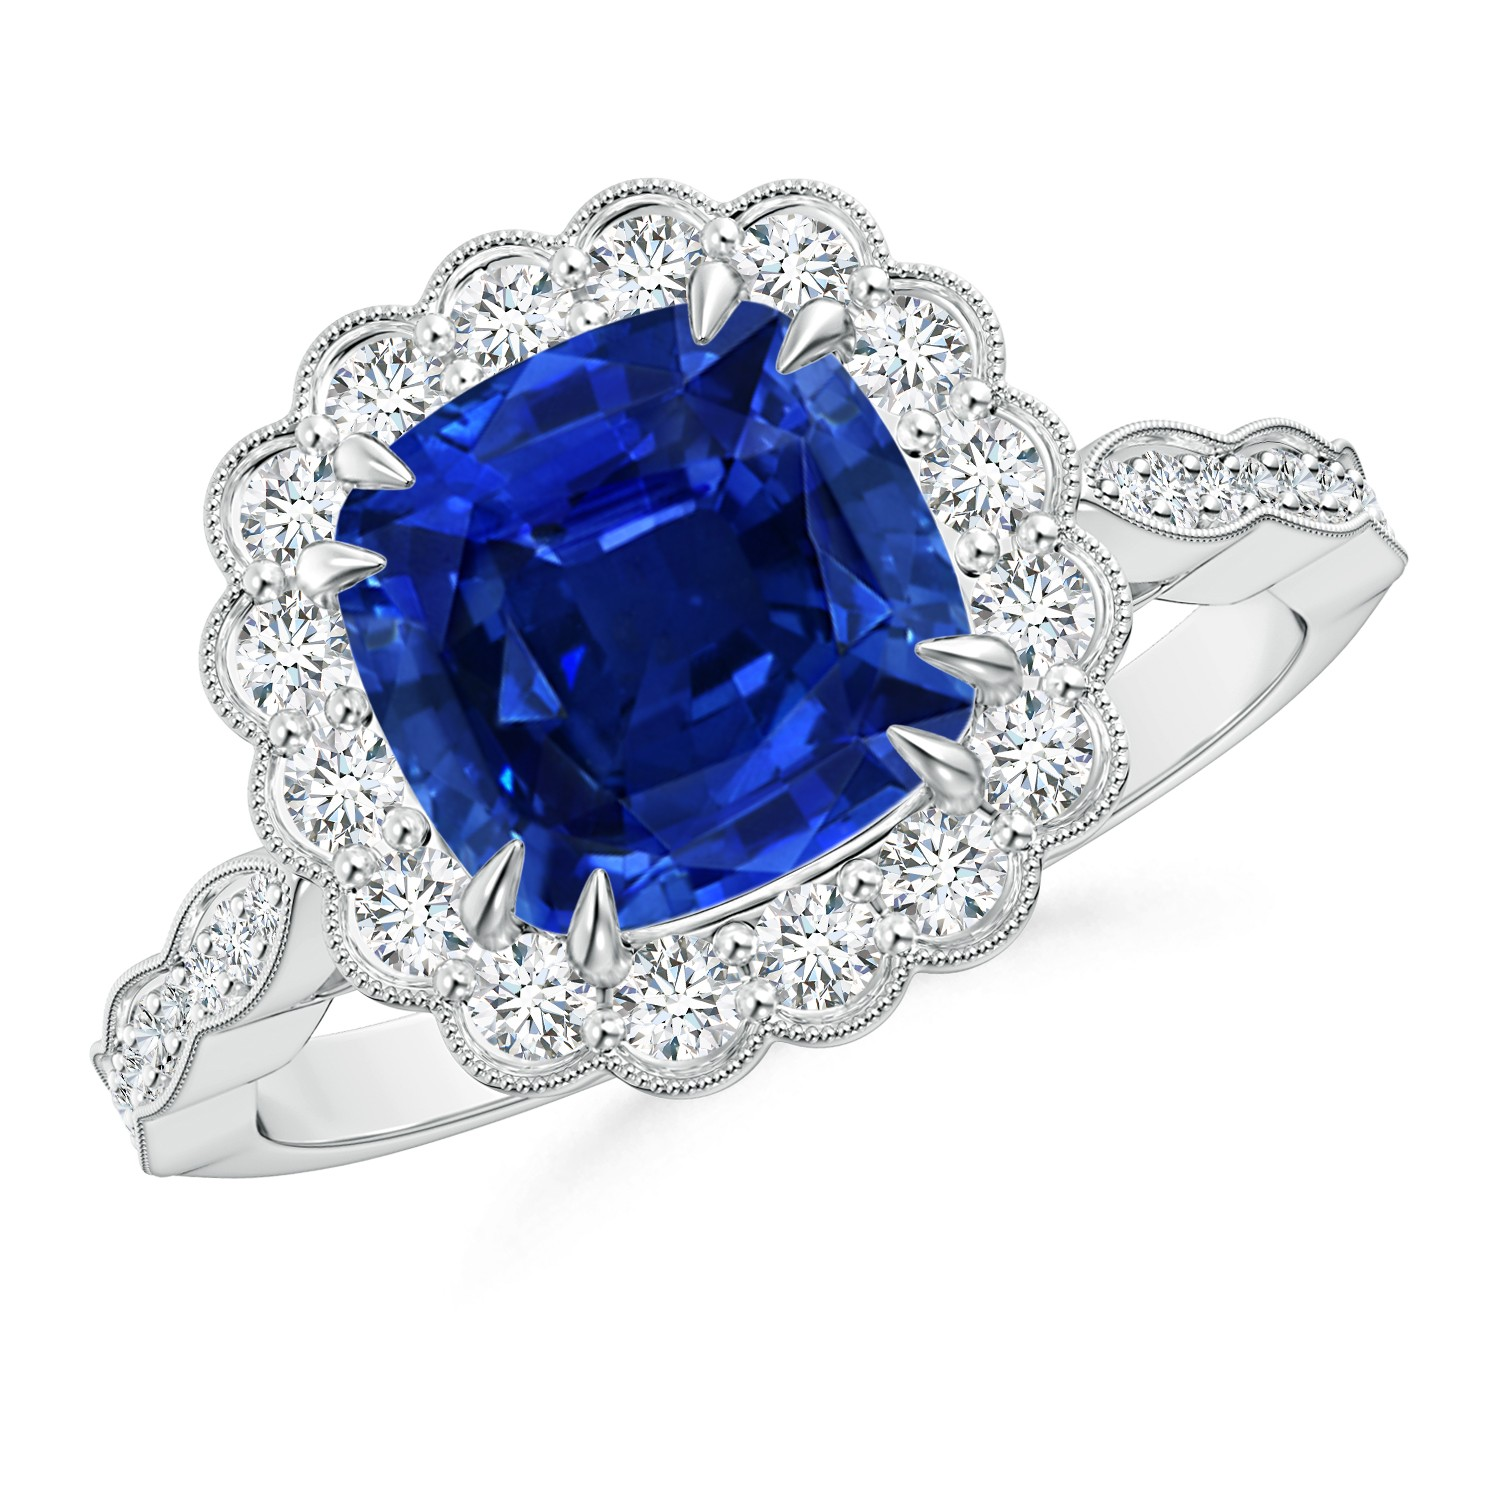 Heritage Collection, Vintage Rings